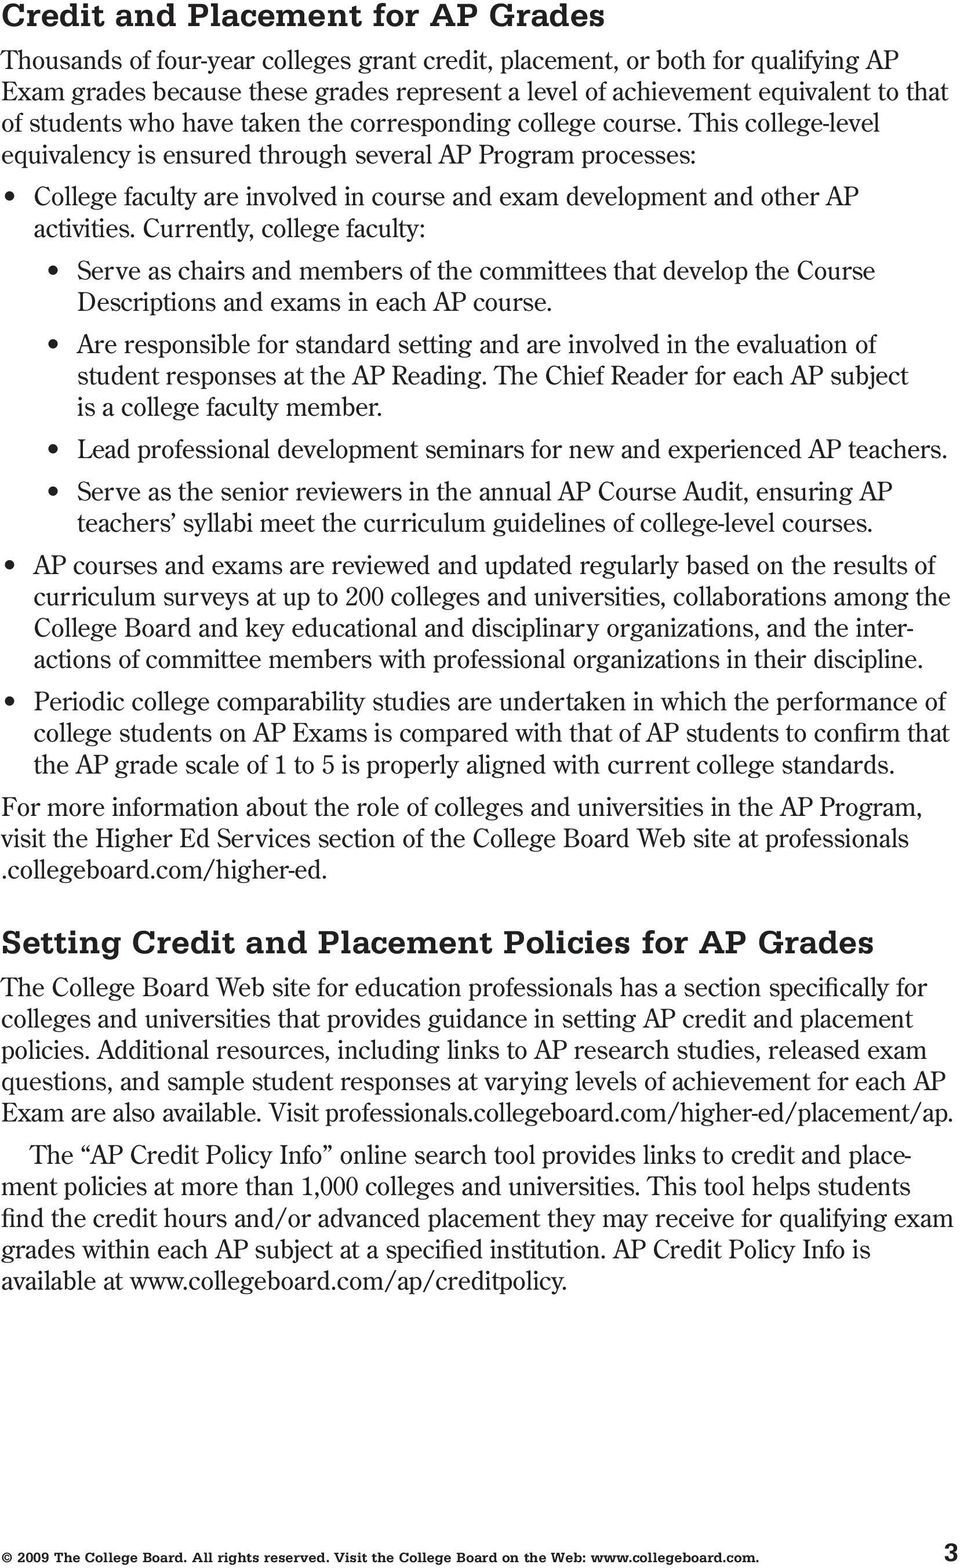 This college-level equivalency is ensured through several AP Program processes: College faculty are involved in course and exam development and other AP activities.